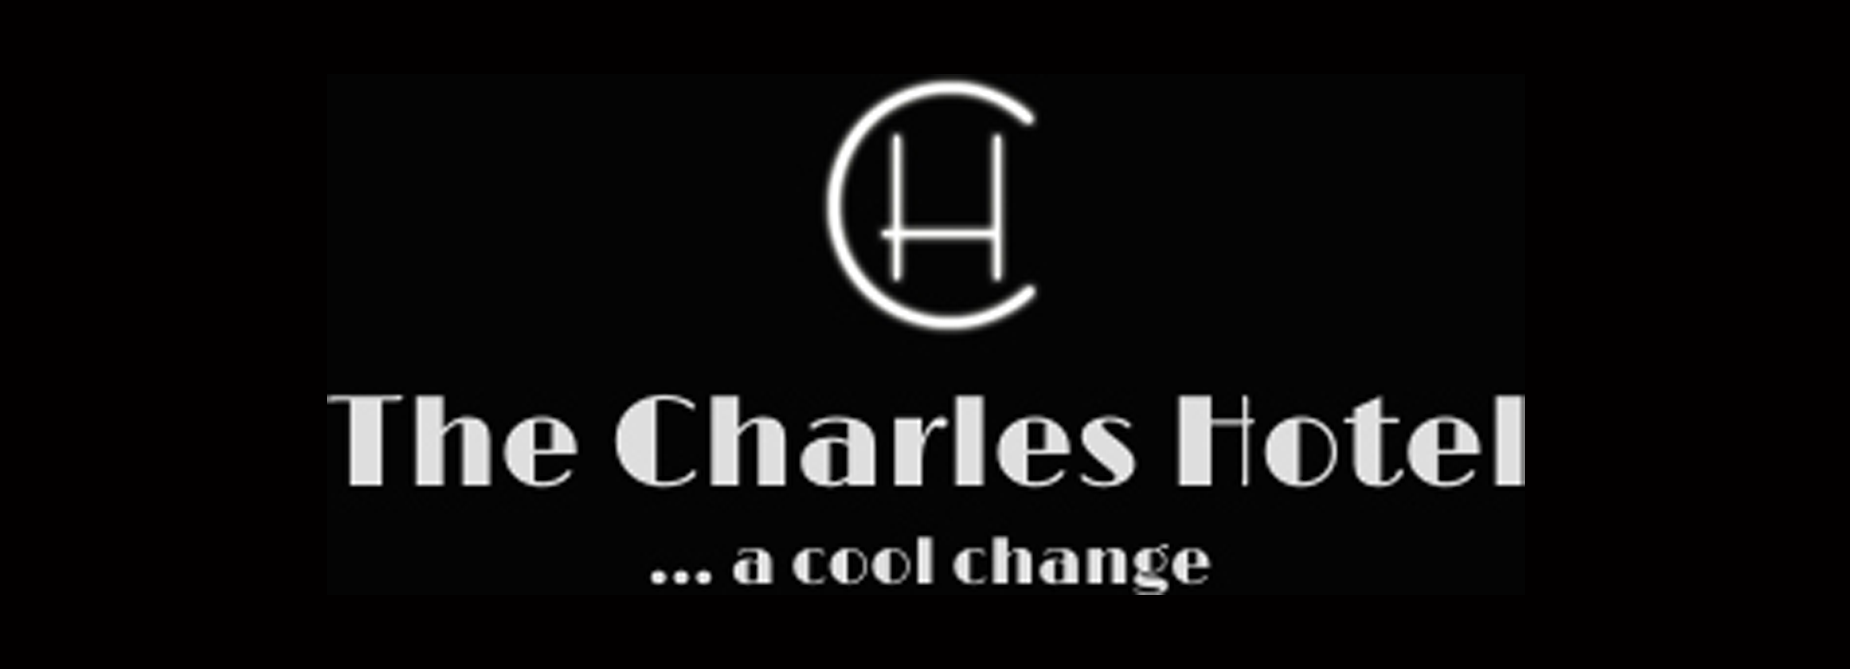 The Charles Hotel Logo